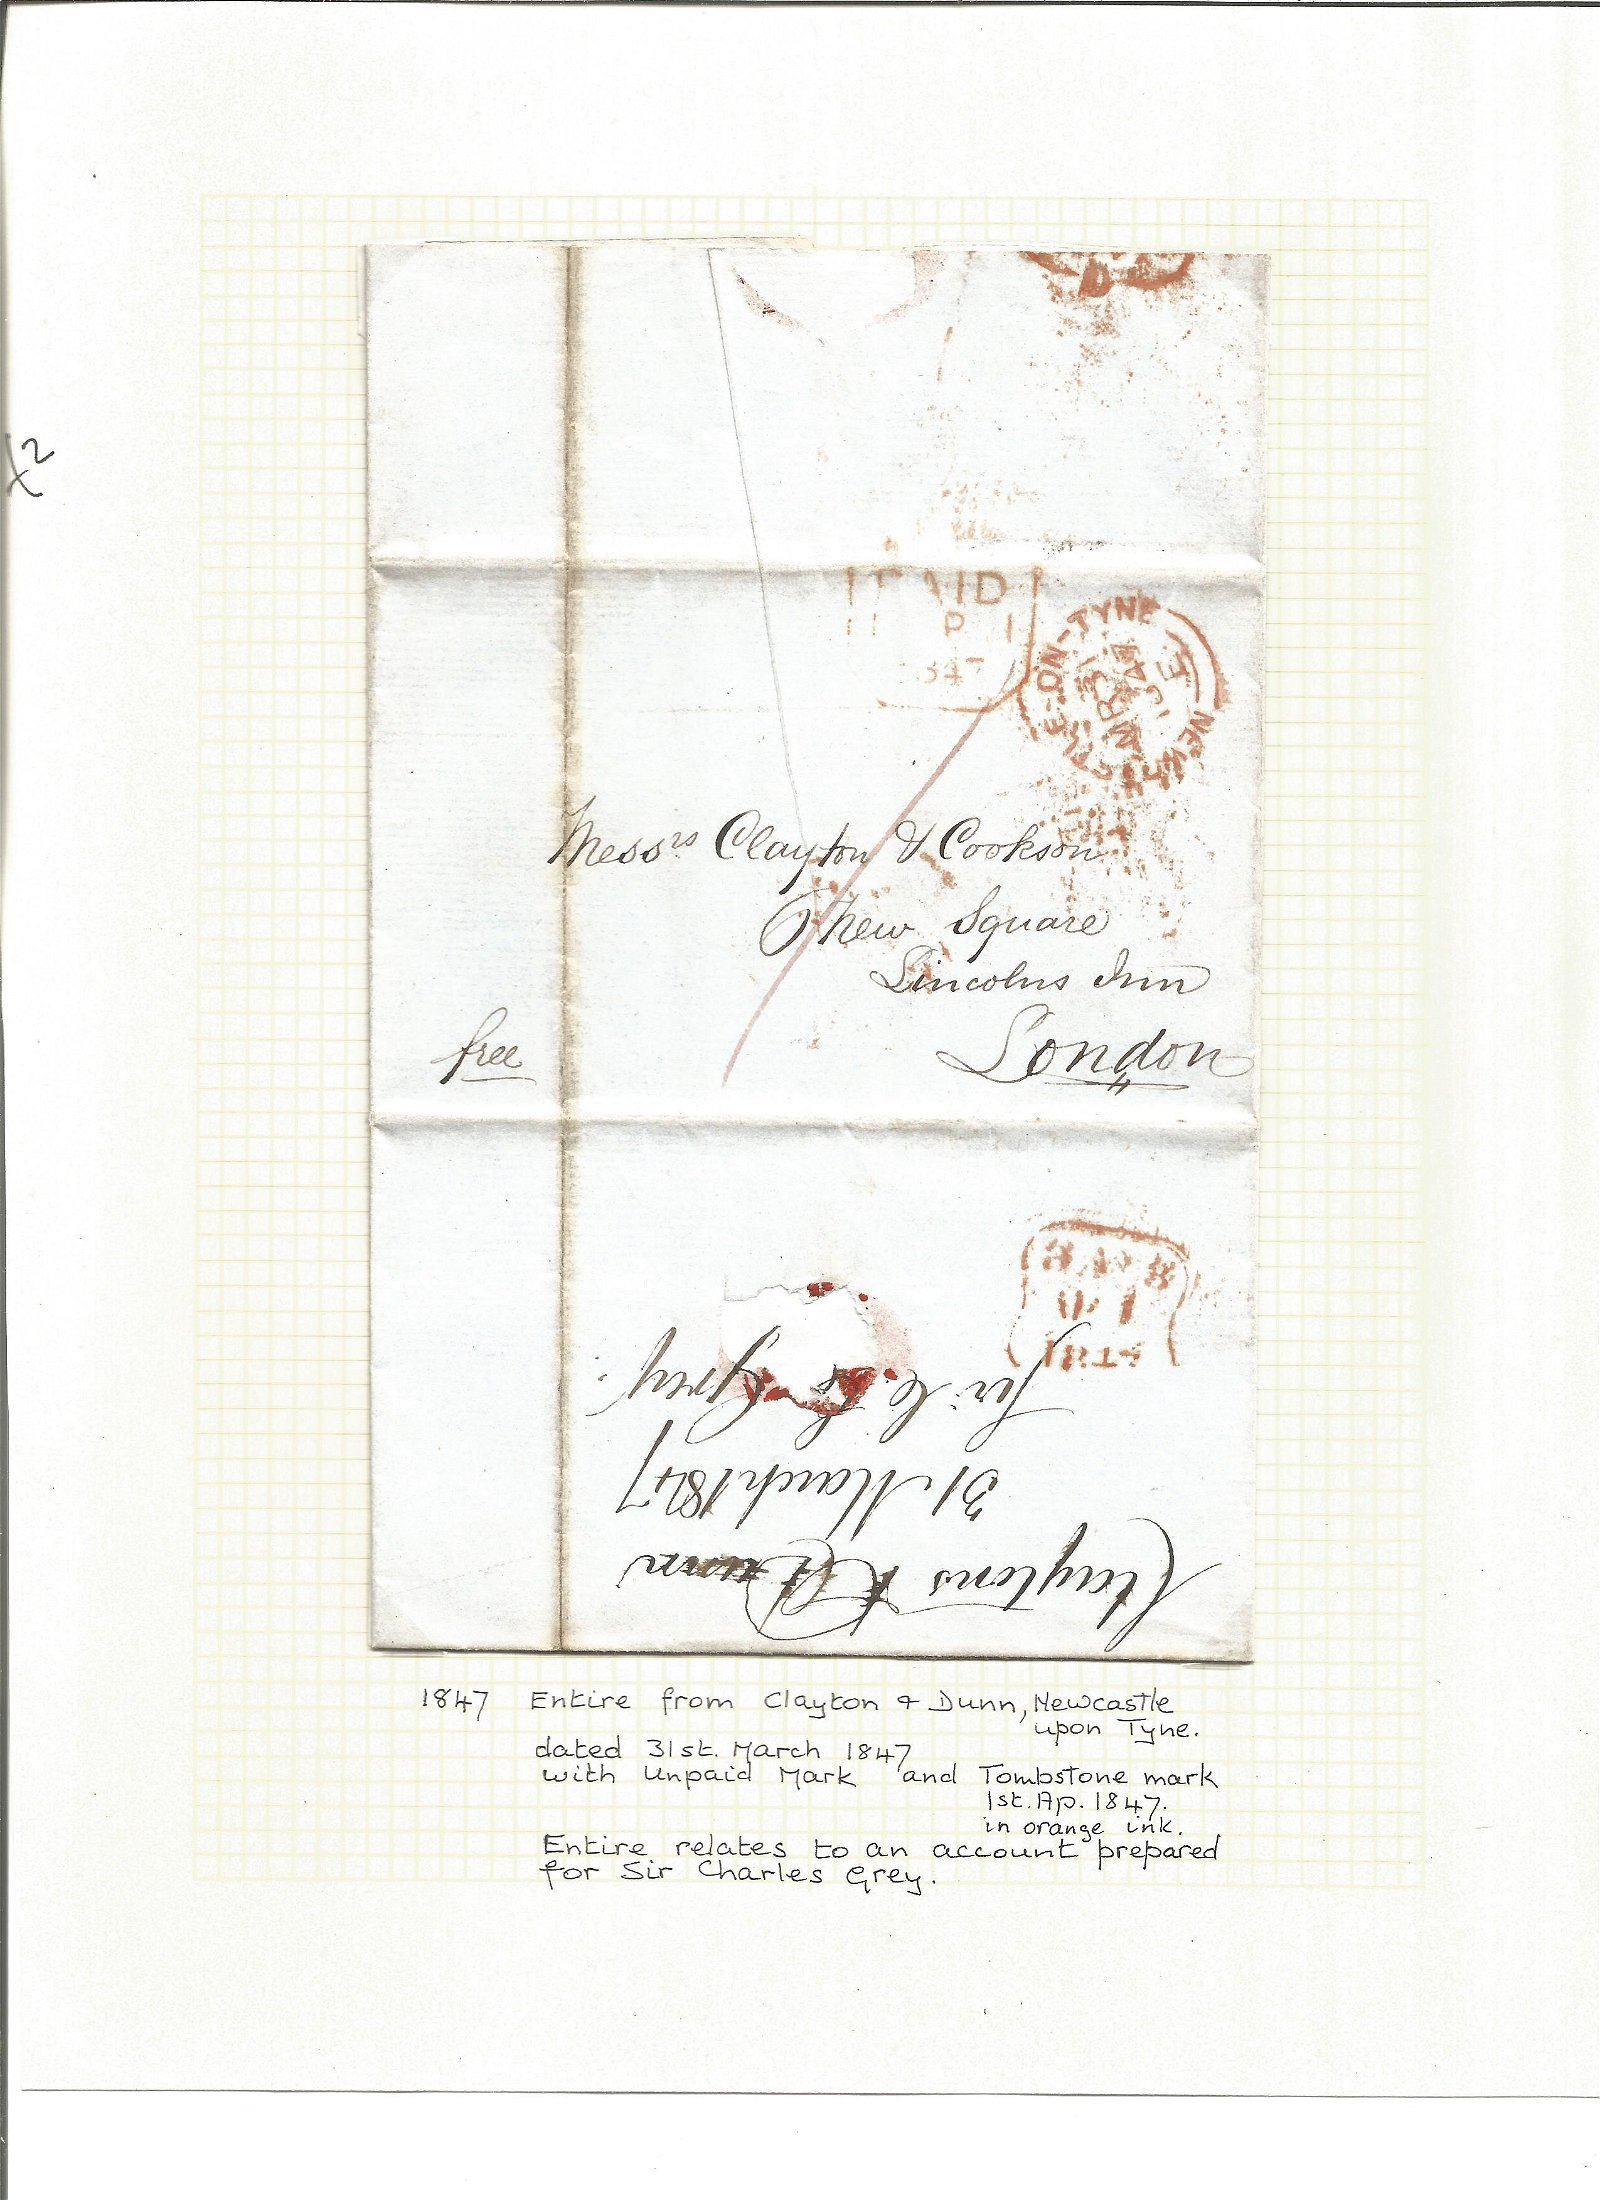 Postal History. 1847 entire from Clayton and Dunn,